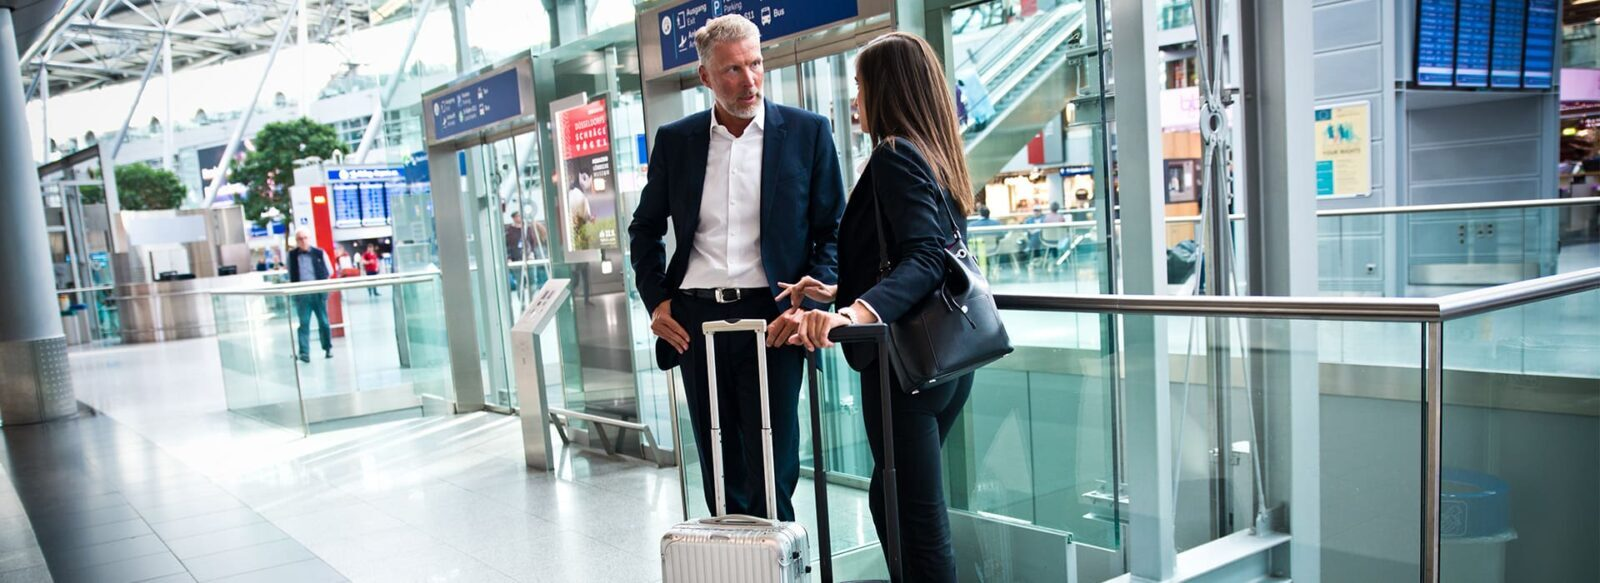 Unternehmen HM Business Travel GmbH Messehotels Travel Management - Entreprise